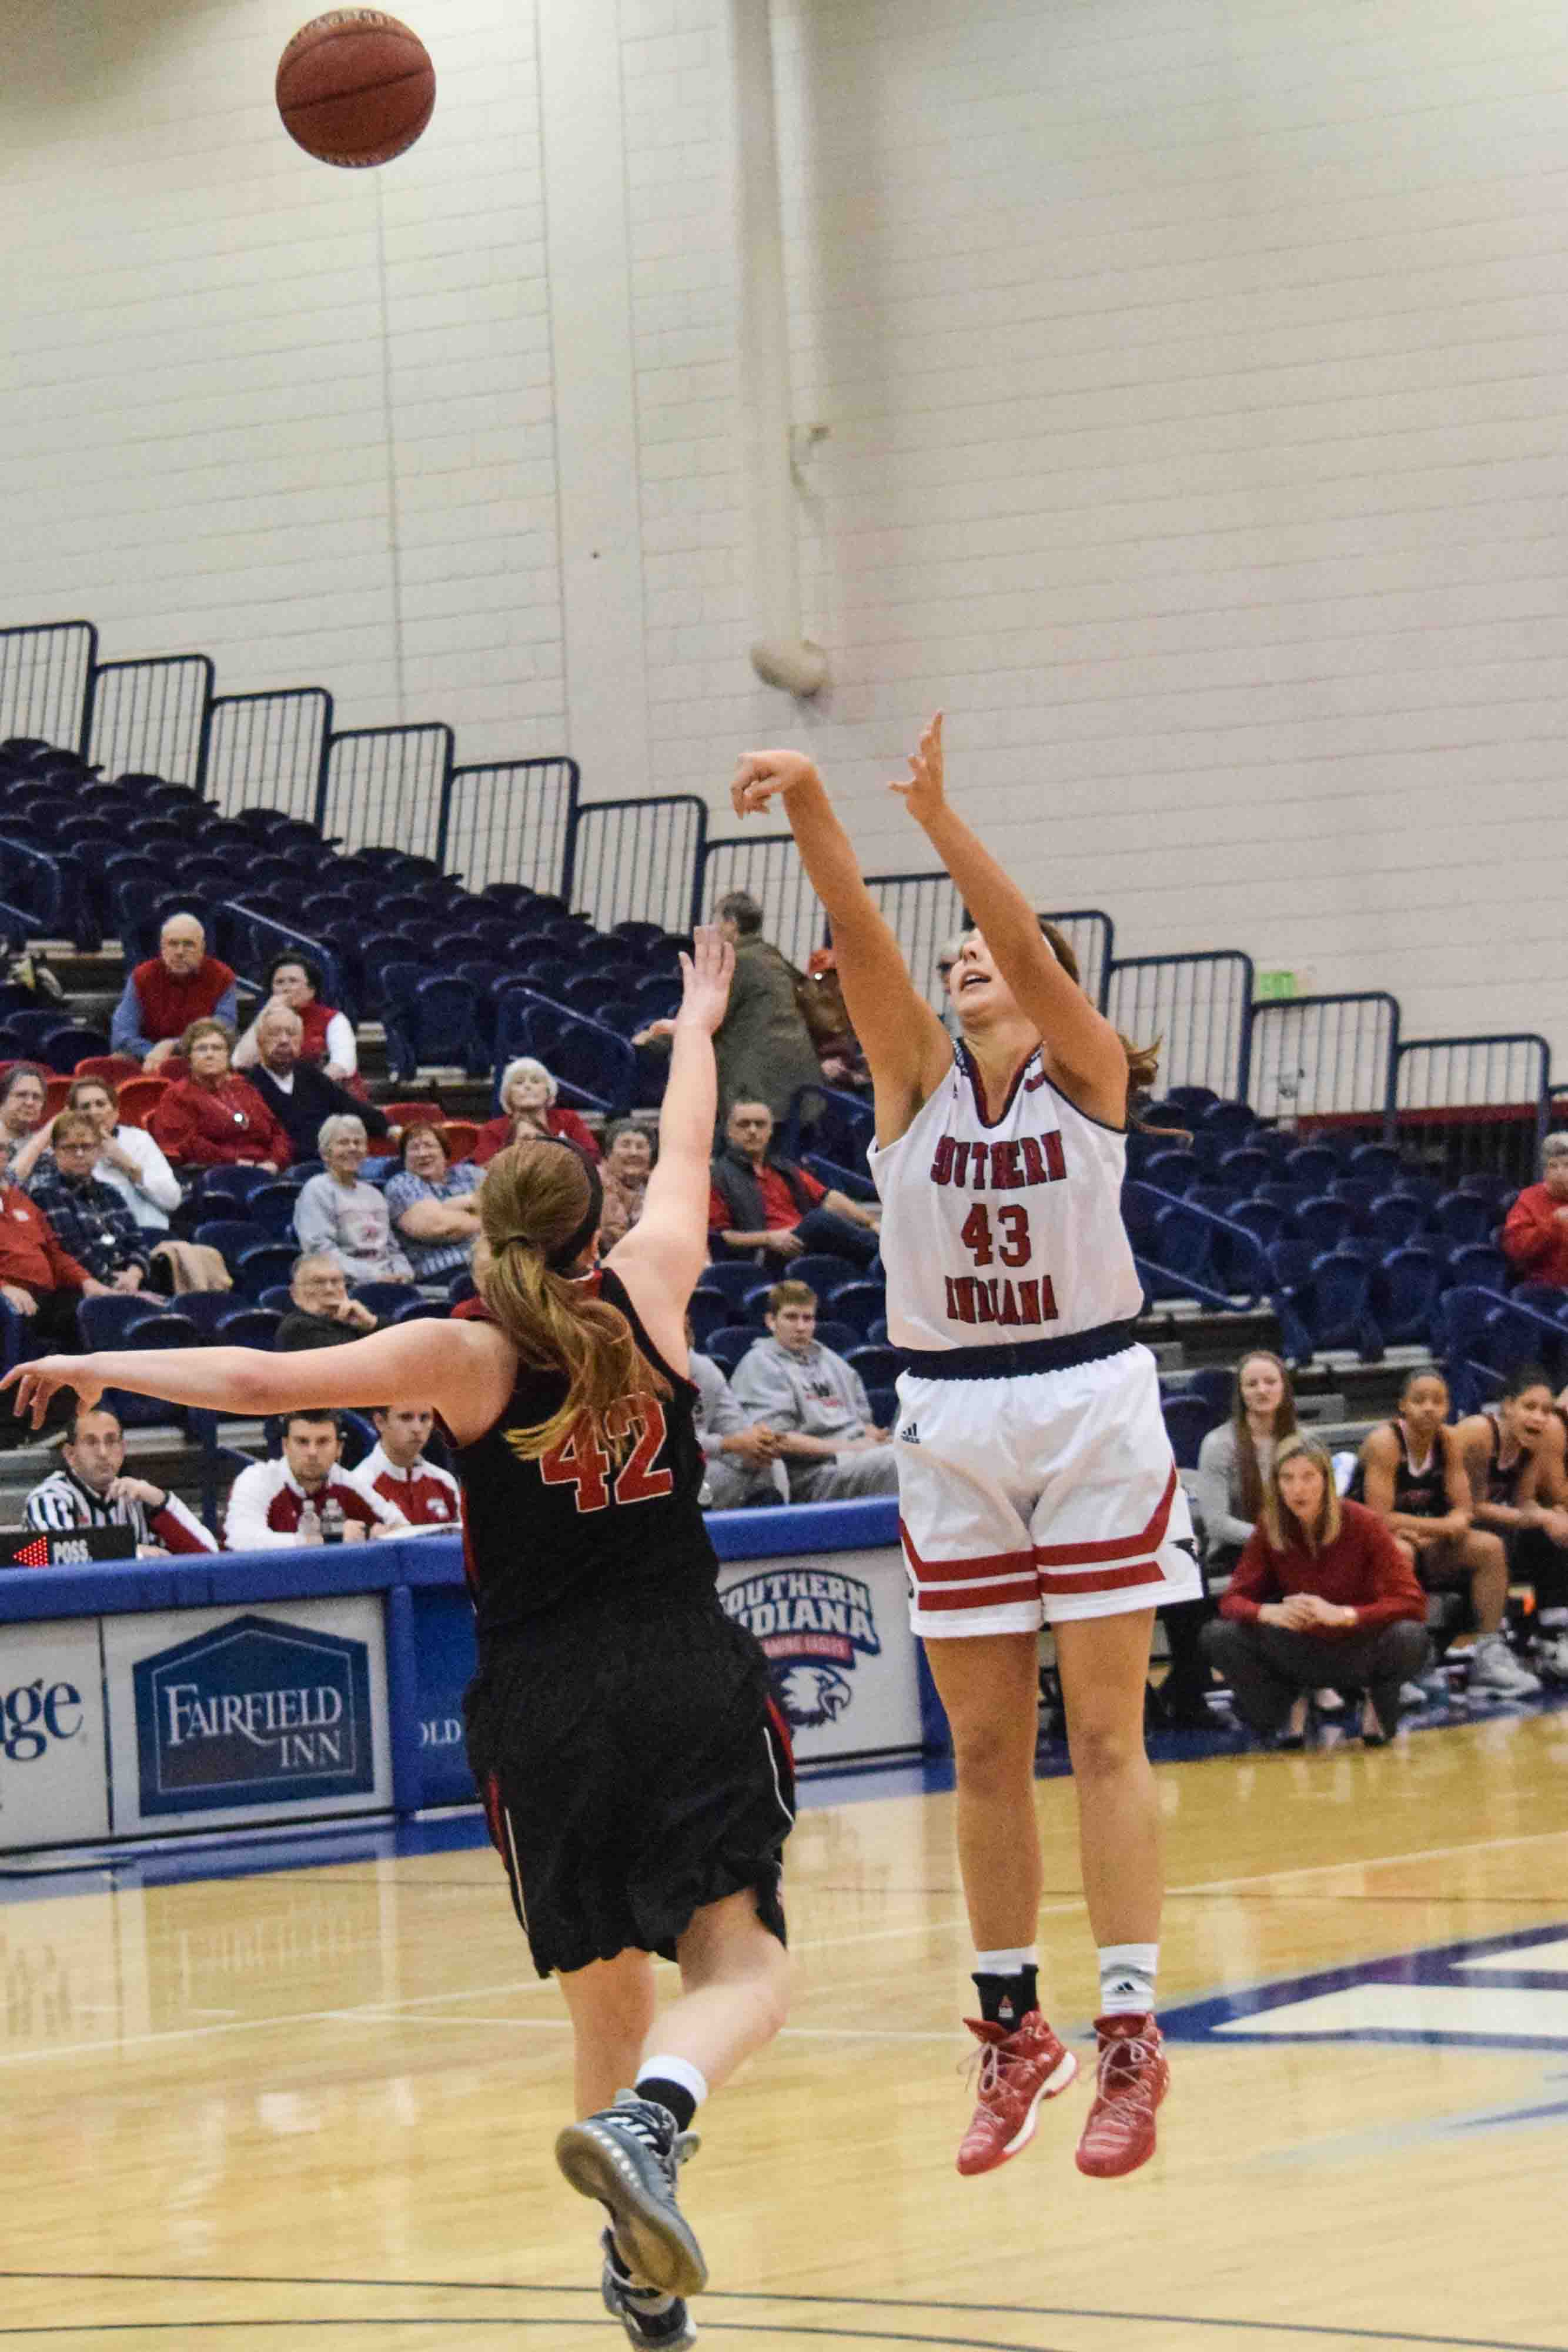 Kacy+Eshweiler%2C+a+sophomore+center%2C+shoots+the+ball+against+a+Lewis+player+Saturday.